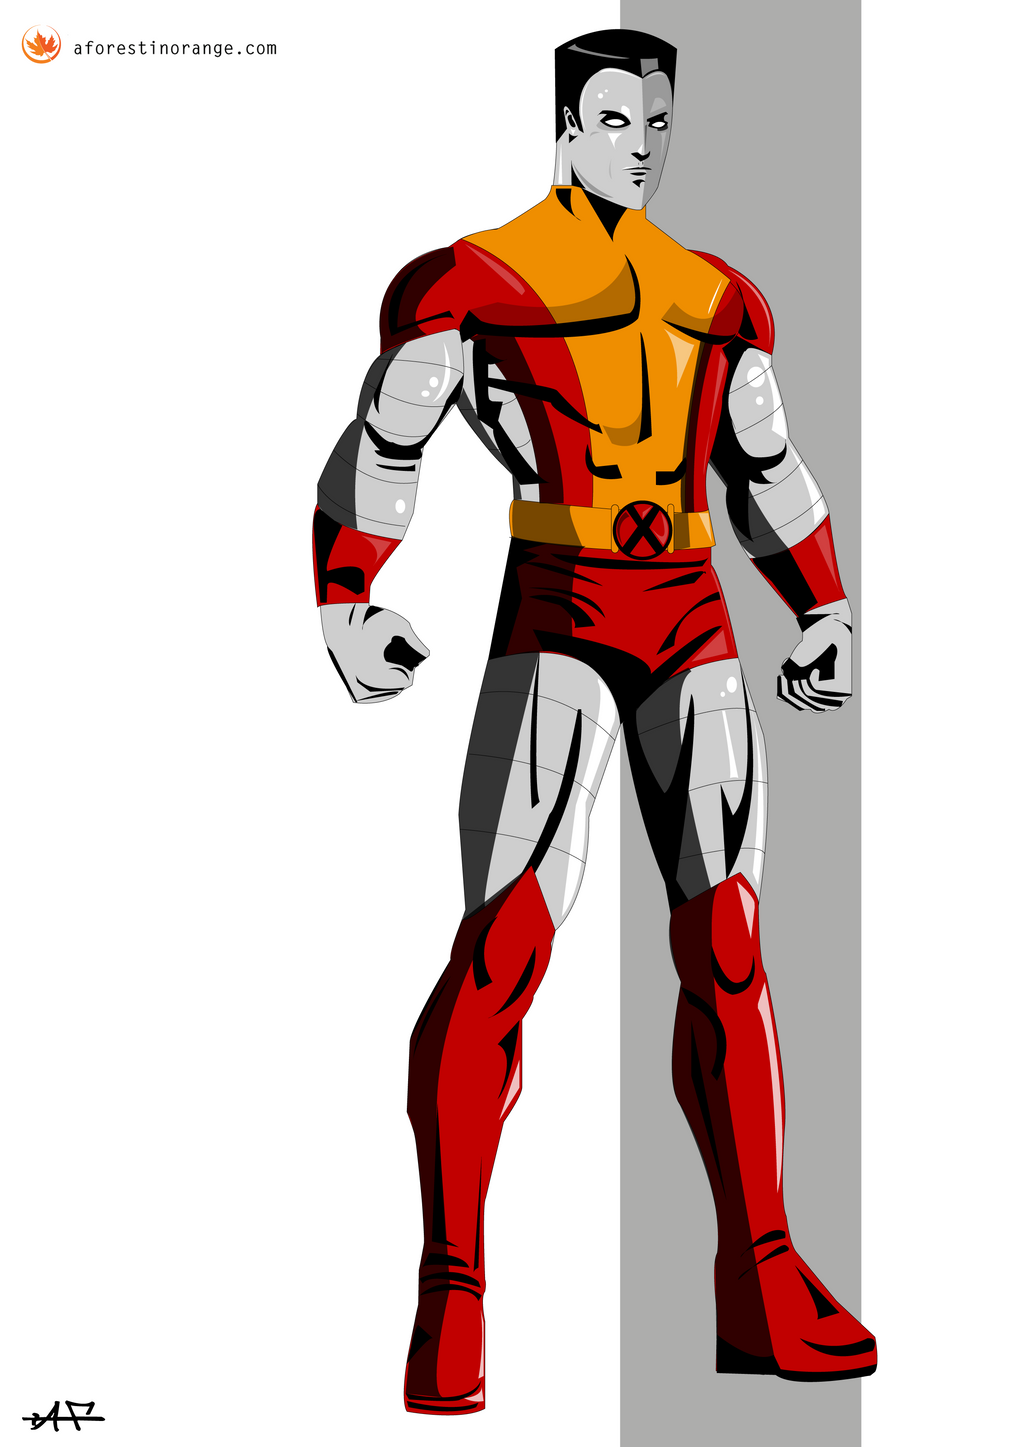 colossus marvel x men - photo #28